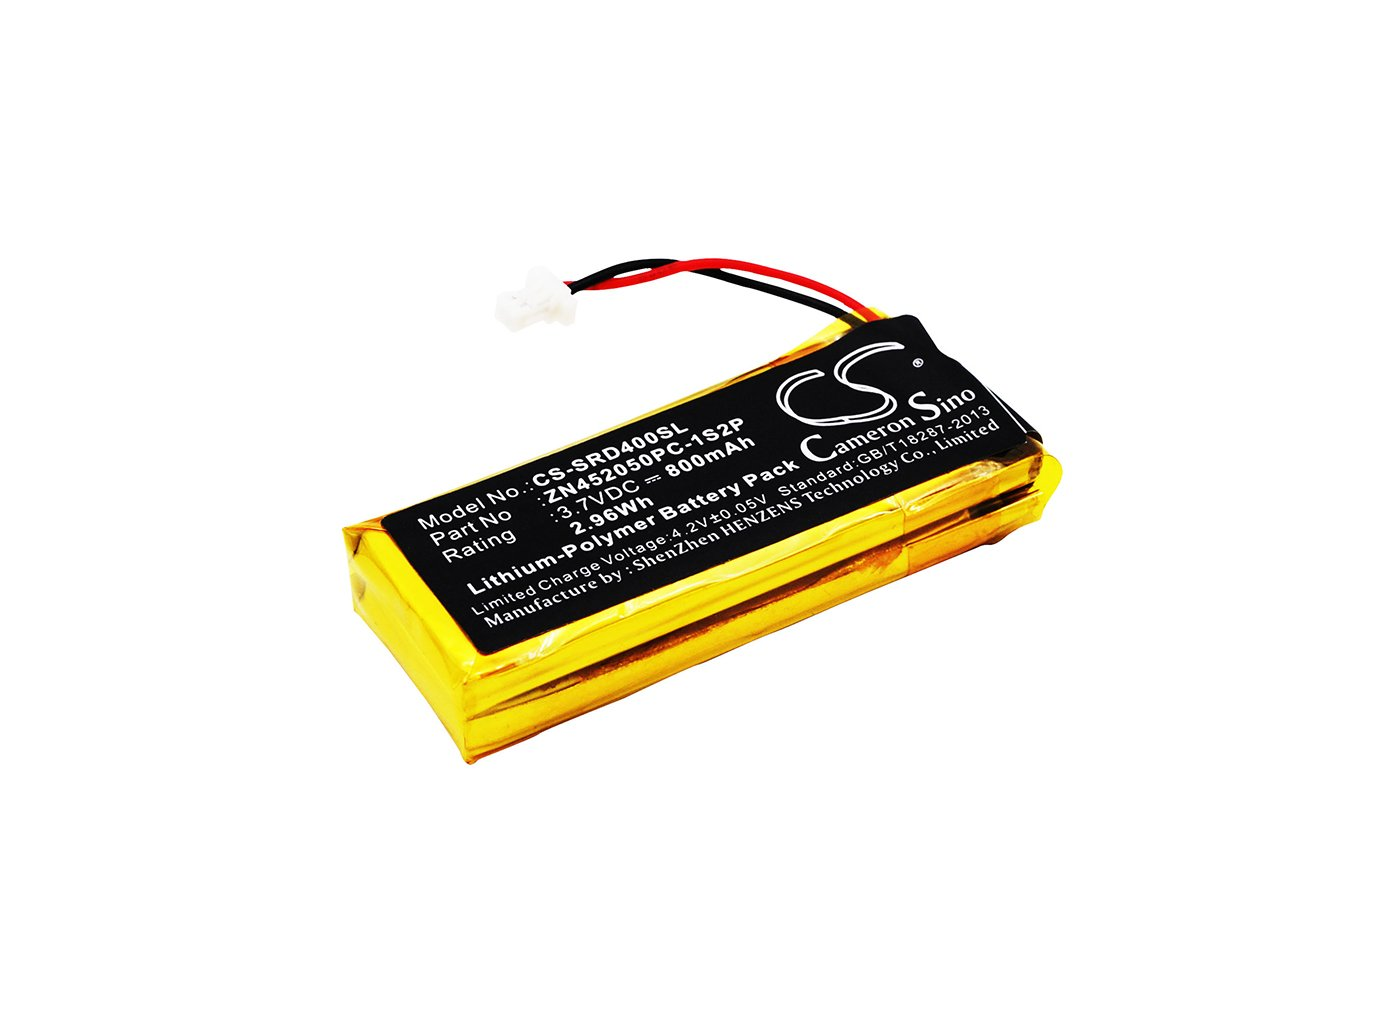 VINTRONS 800mAh Battery for SCHUBERTH C3